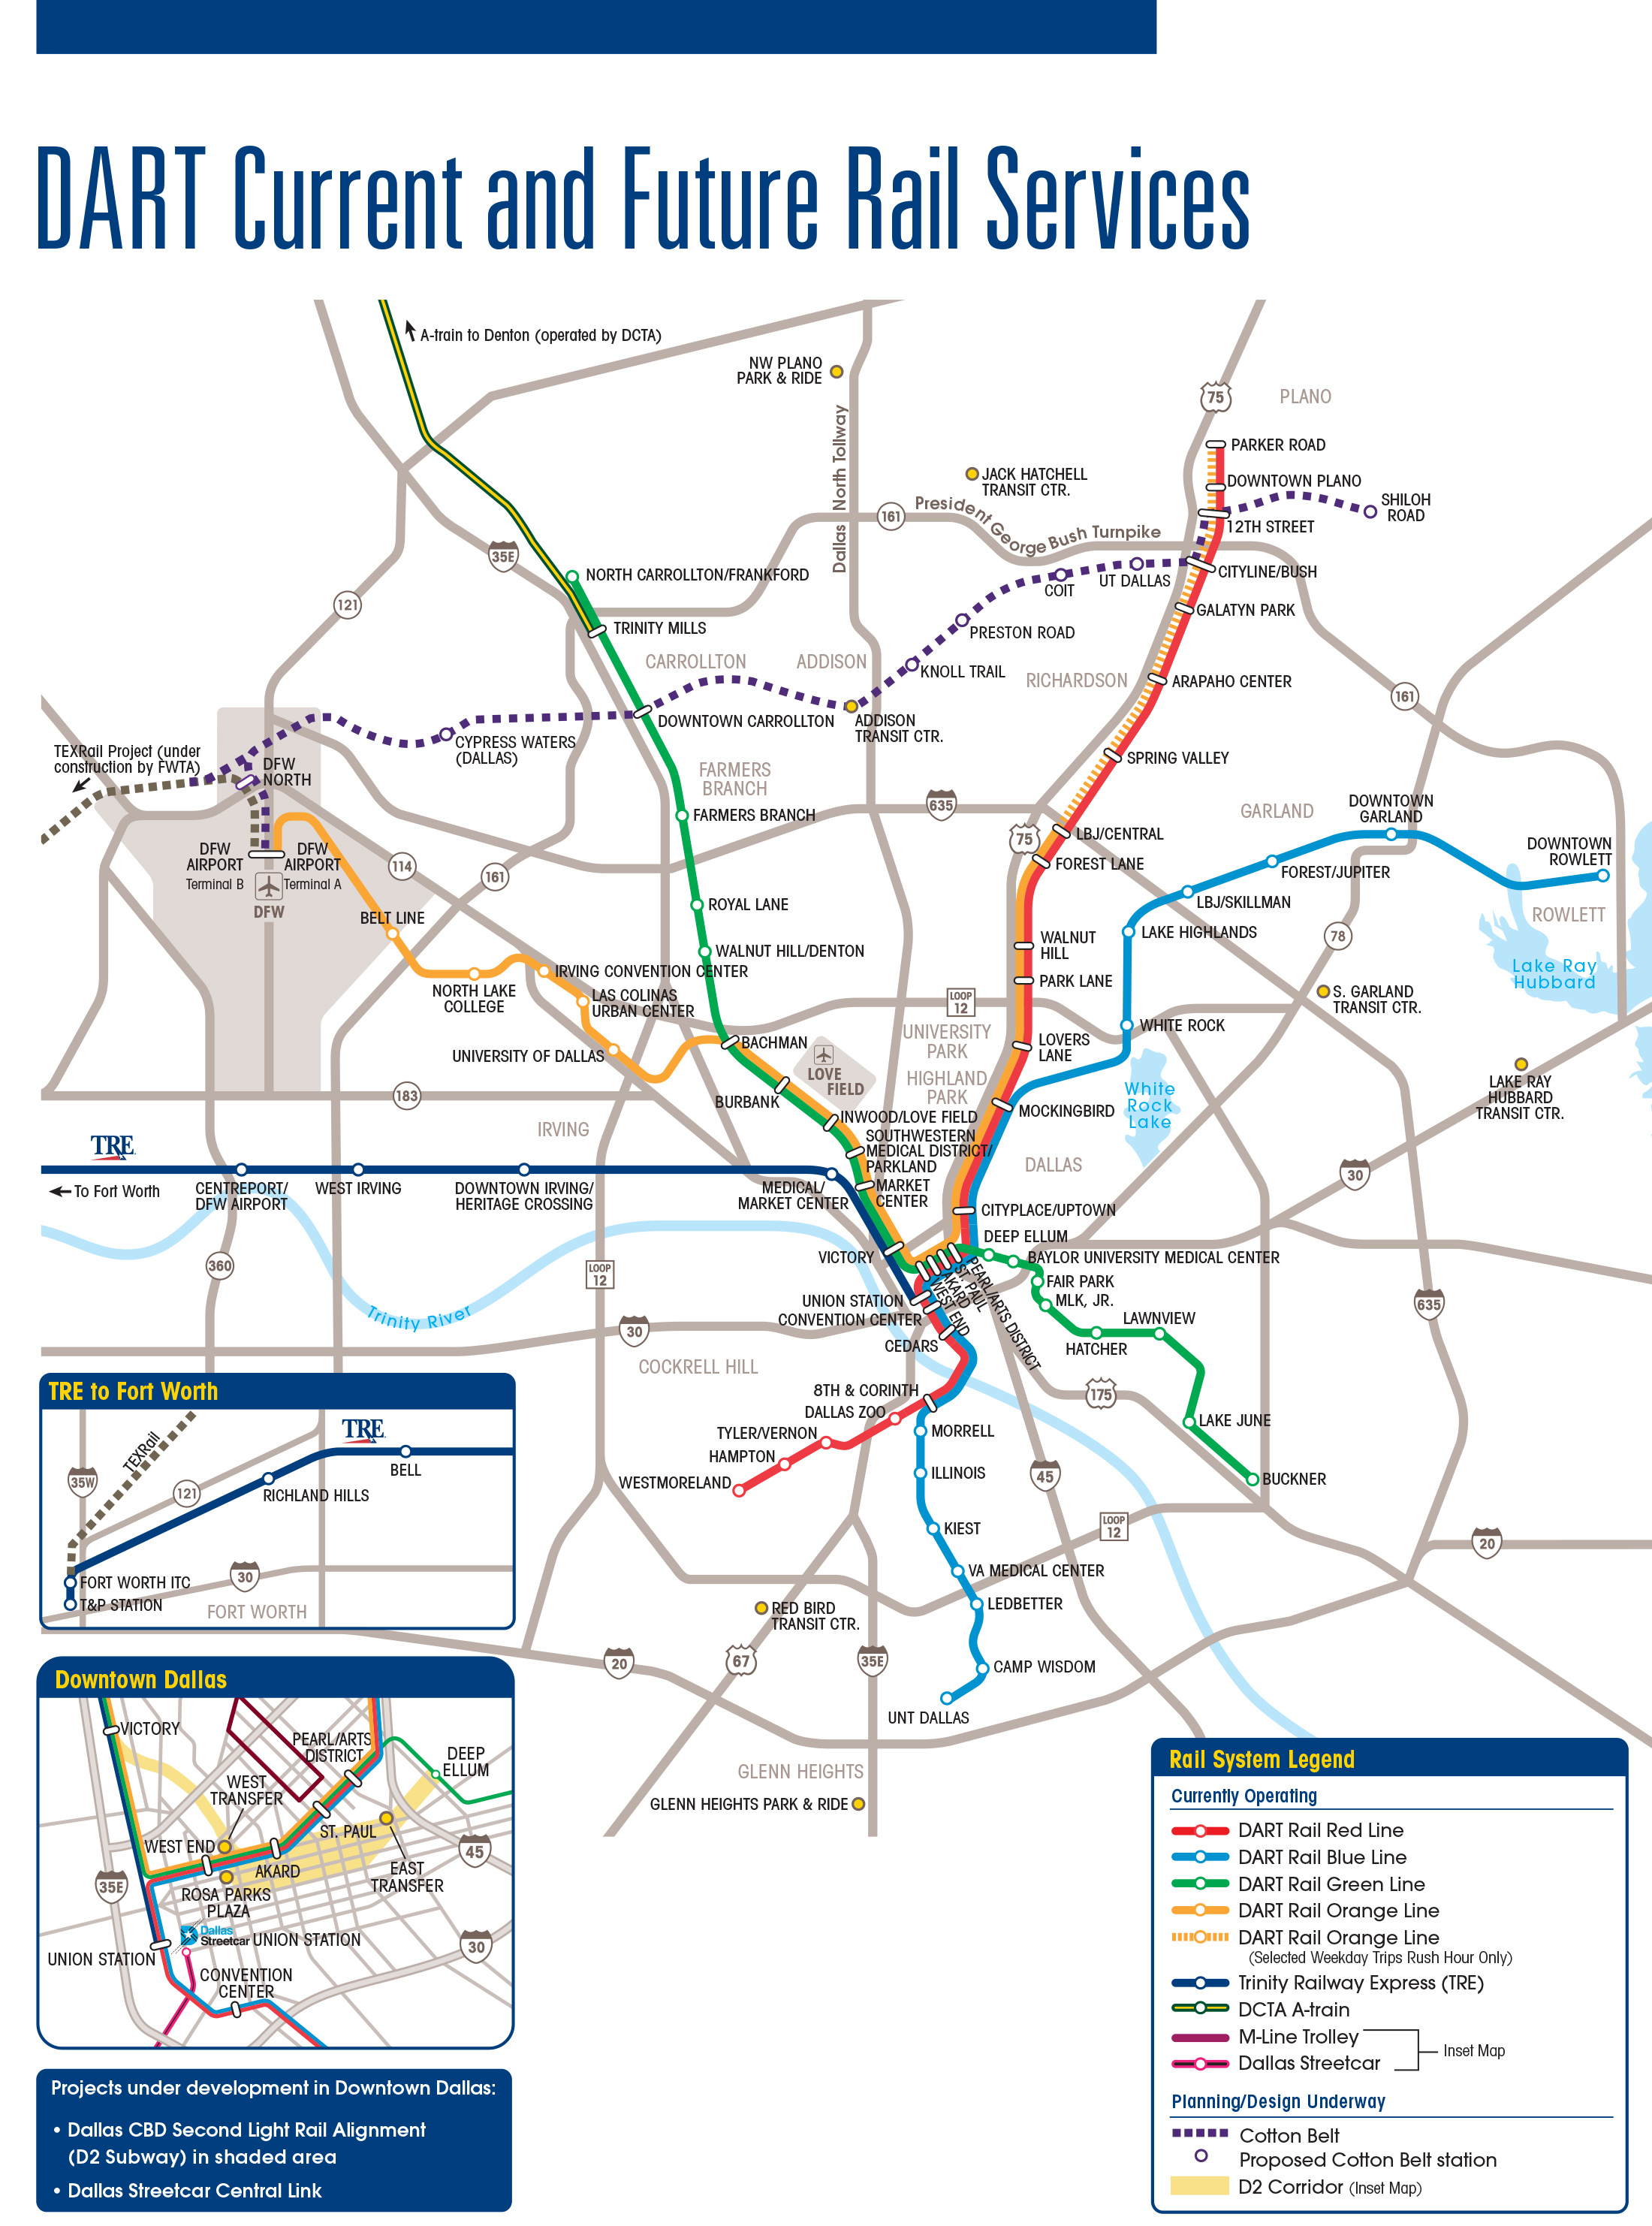 dartorg  dart current and future services map - view a printable pdf of the current and future services map • dart transitsystem plan • dart rail expansion information • dart rail expansion maps